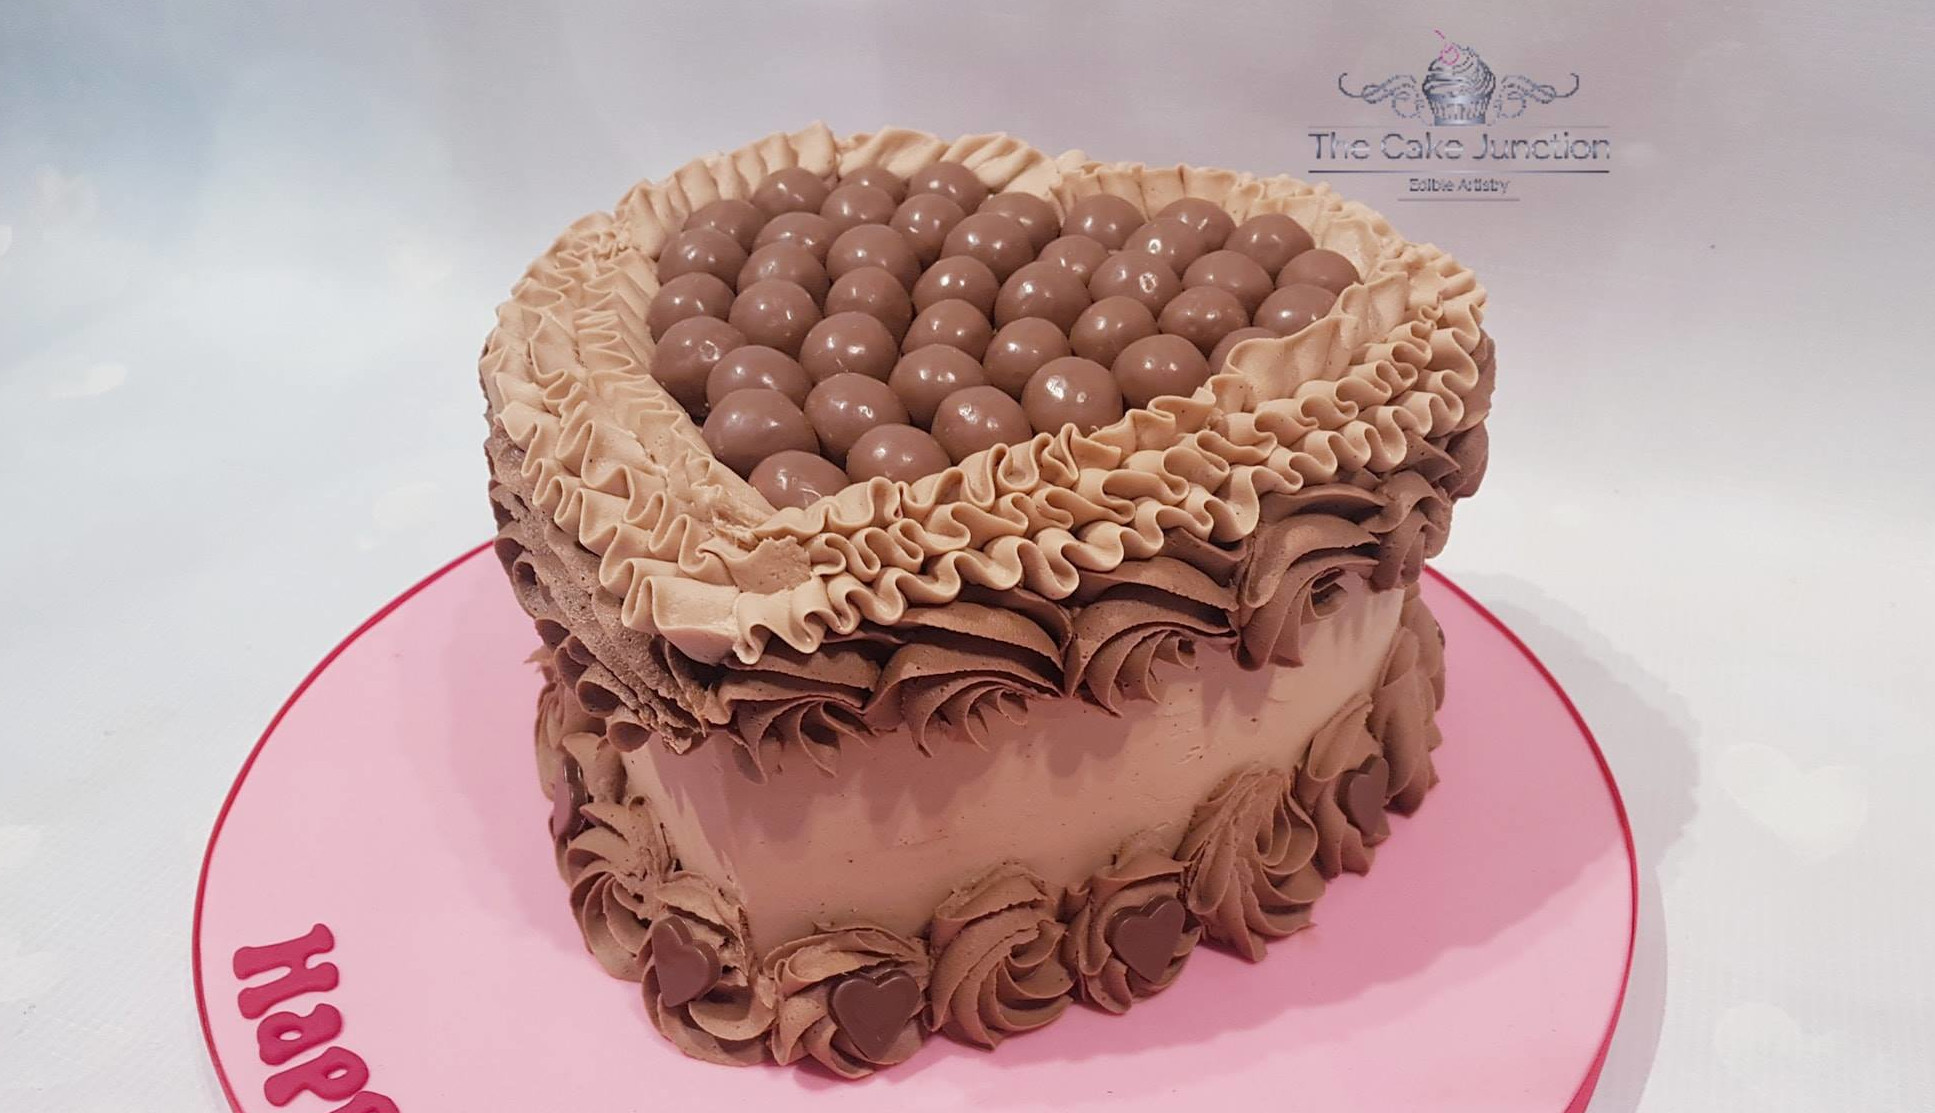 Chocolate Butter Cream Cake Junction